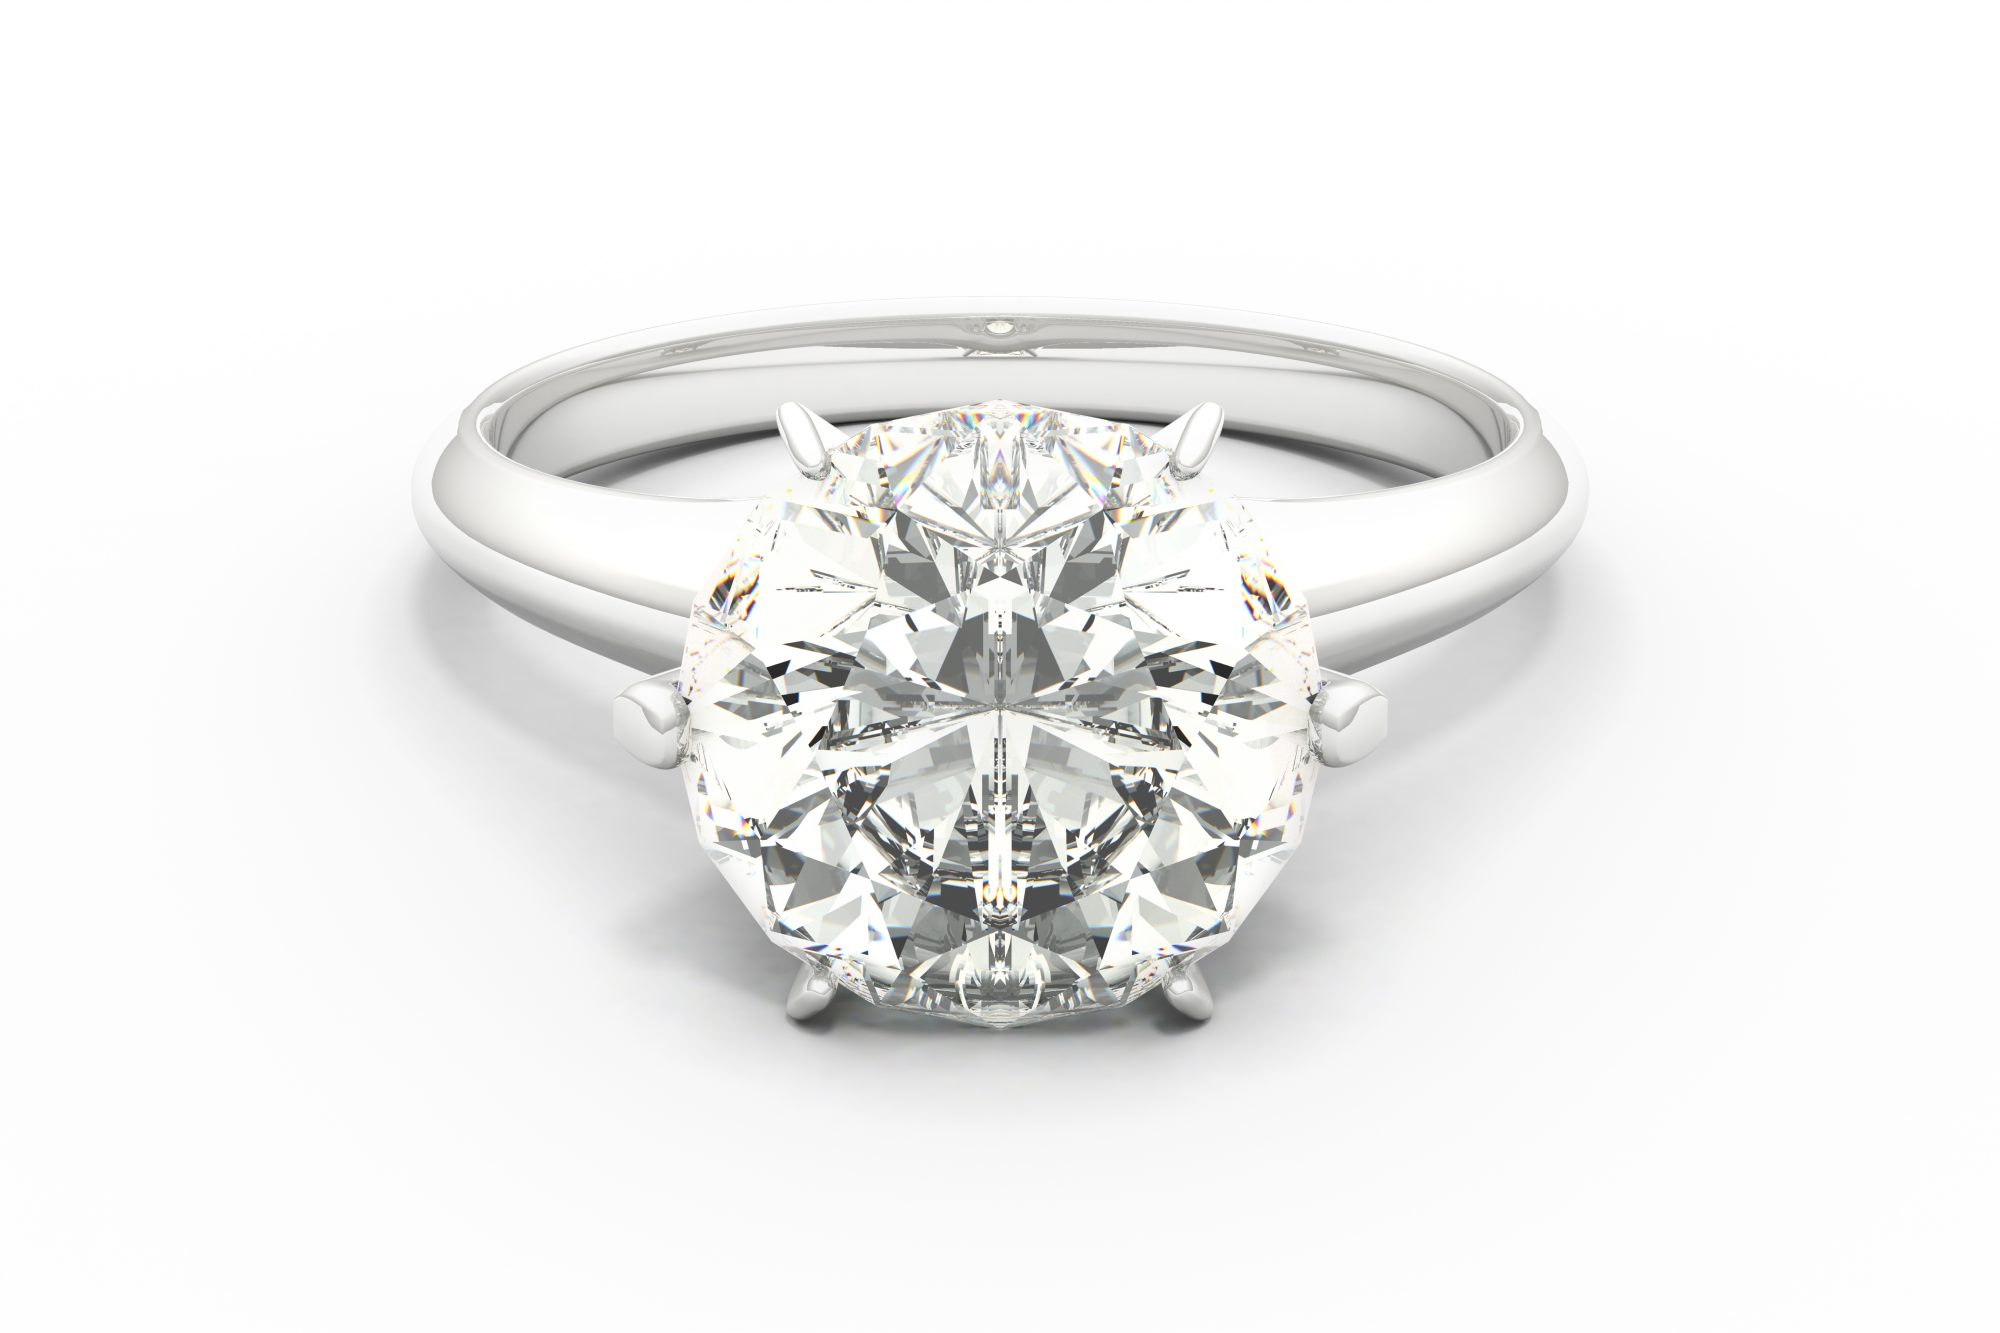 Engagement Ring on White